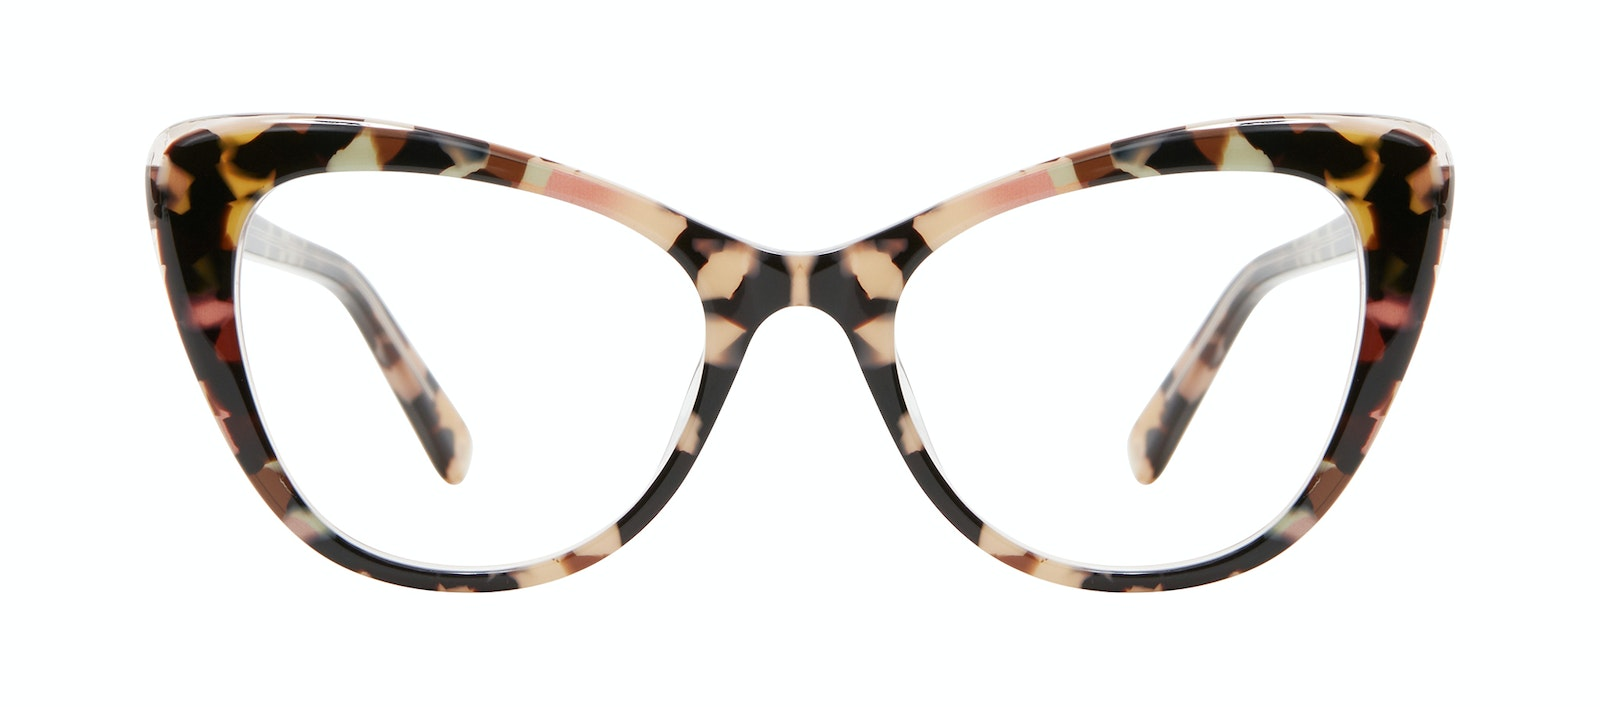 Affordable Fashion Glasses Cat Eye Eyeglasses Women Verve M Pastel Tort Front